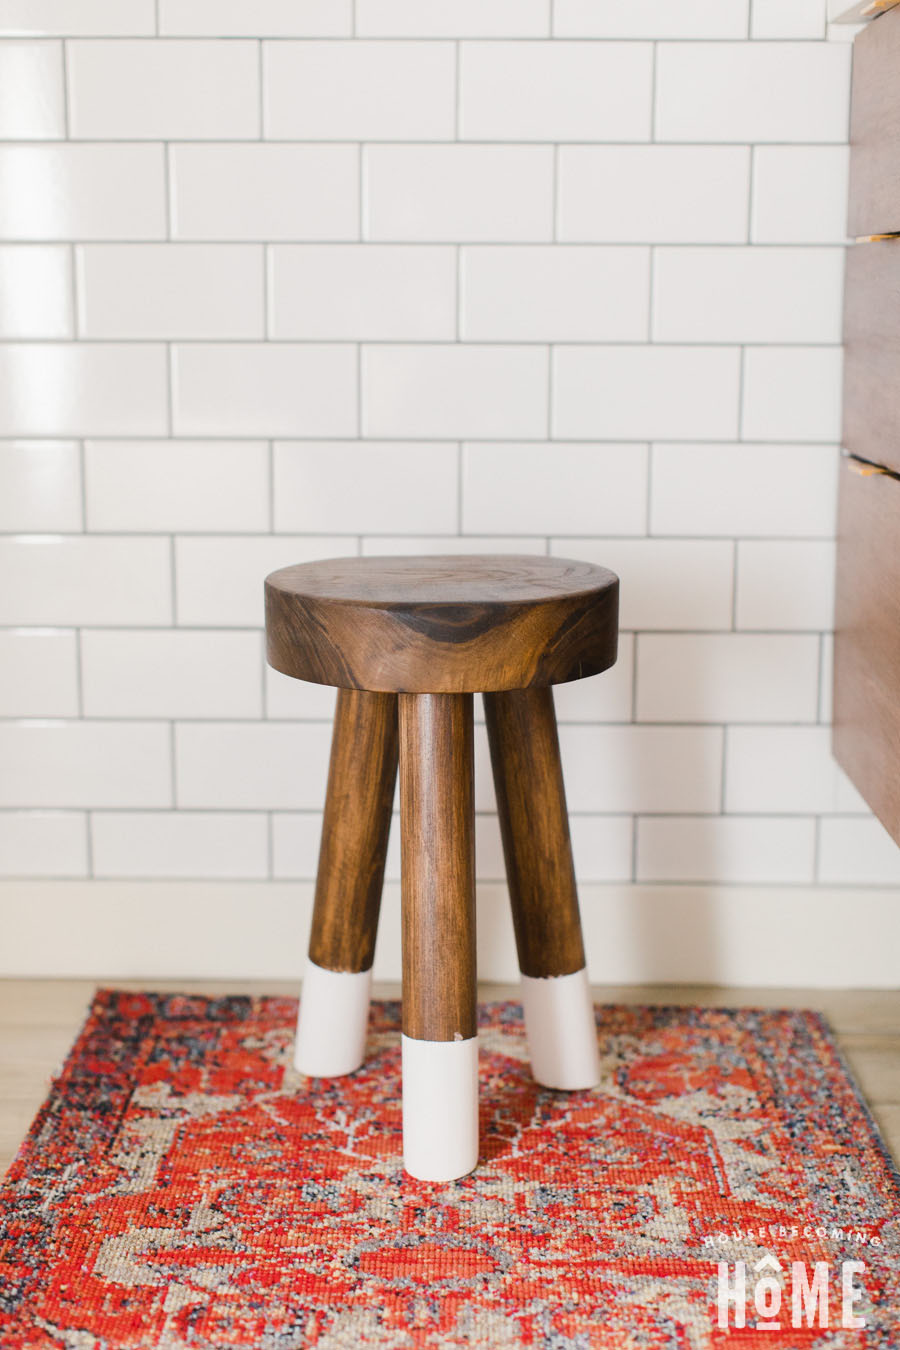 DIY Stool With Chunky Walnut Top and 11 Degree Angled Leg Mounting Plates